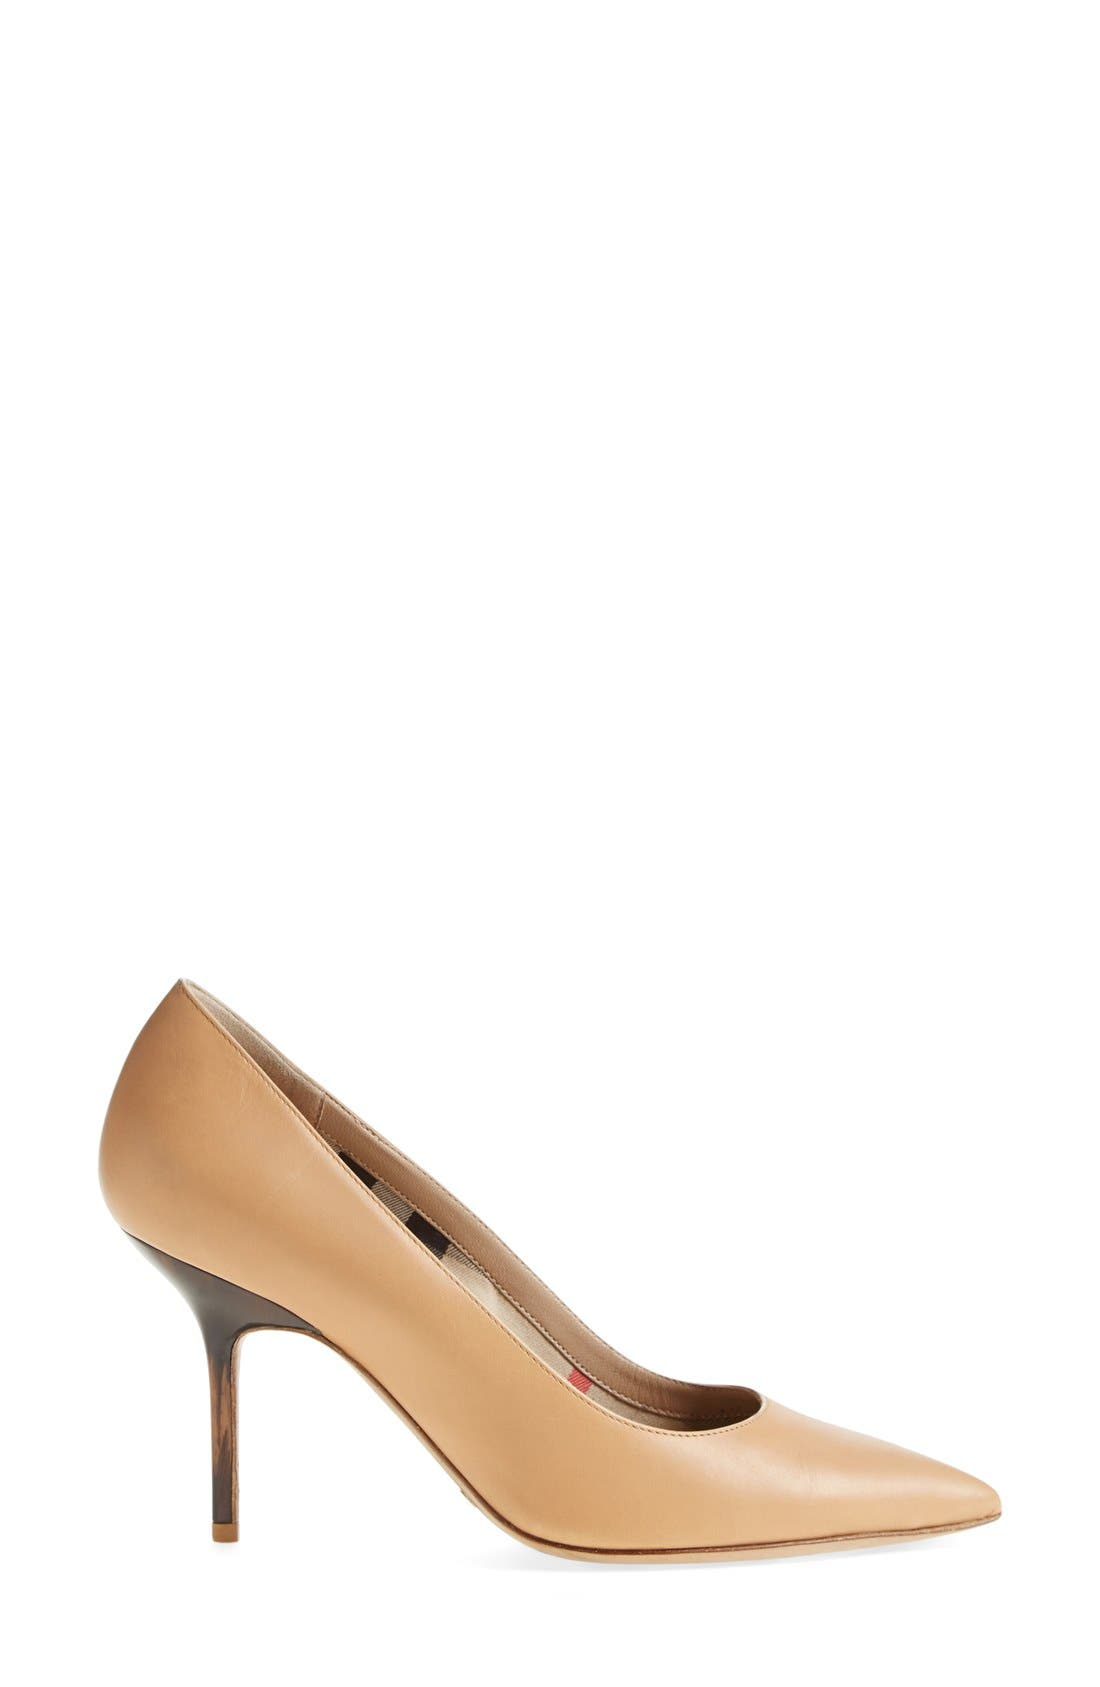 'Mawdesley' Pointy Toe Pump,                             Alternate thumbnail 4, color,                             Nude